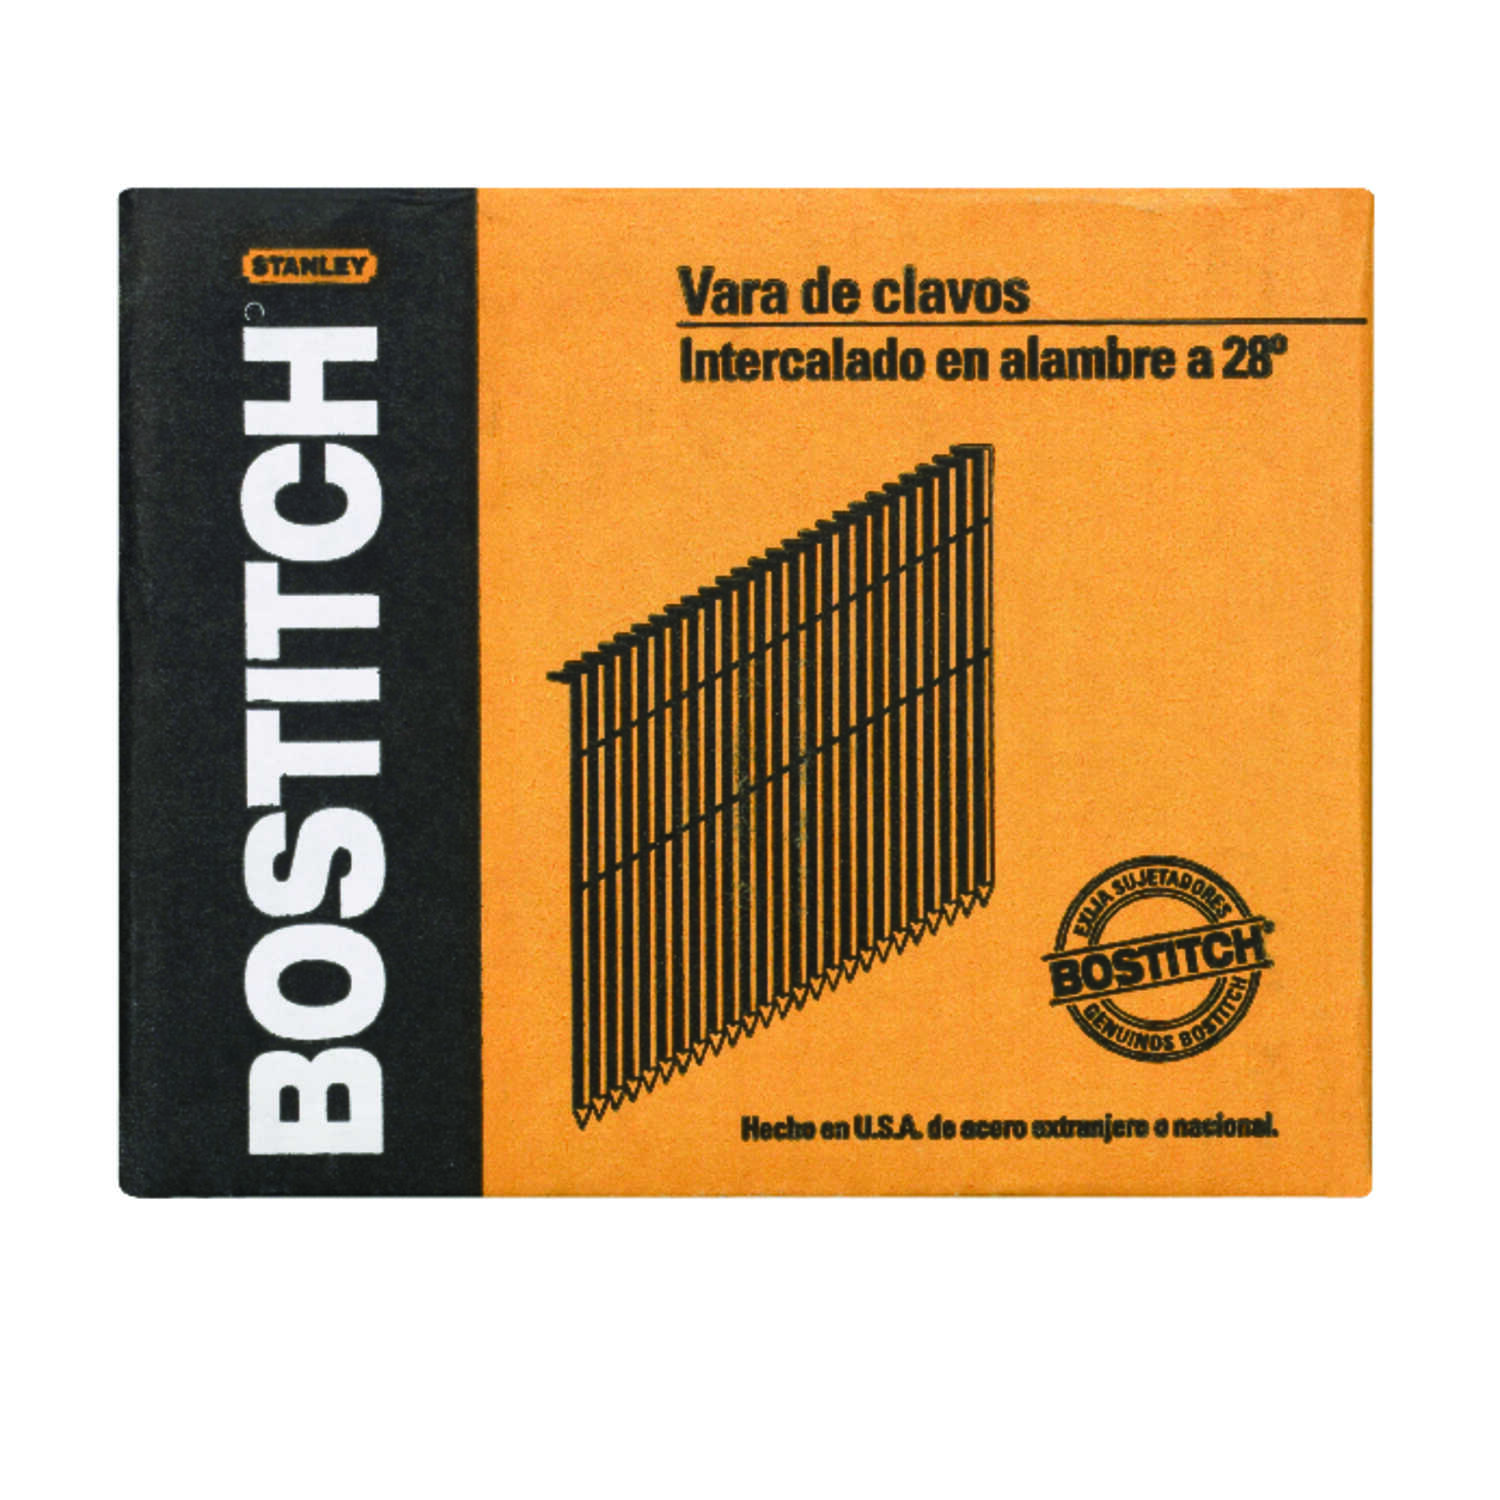 Stanley Bostitch  28 deg. 11 Ga. Smooth  Stick  Framing Nails  3-1/4 in. L 2,000 pc.